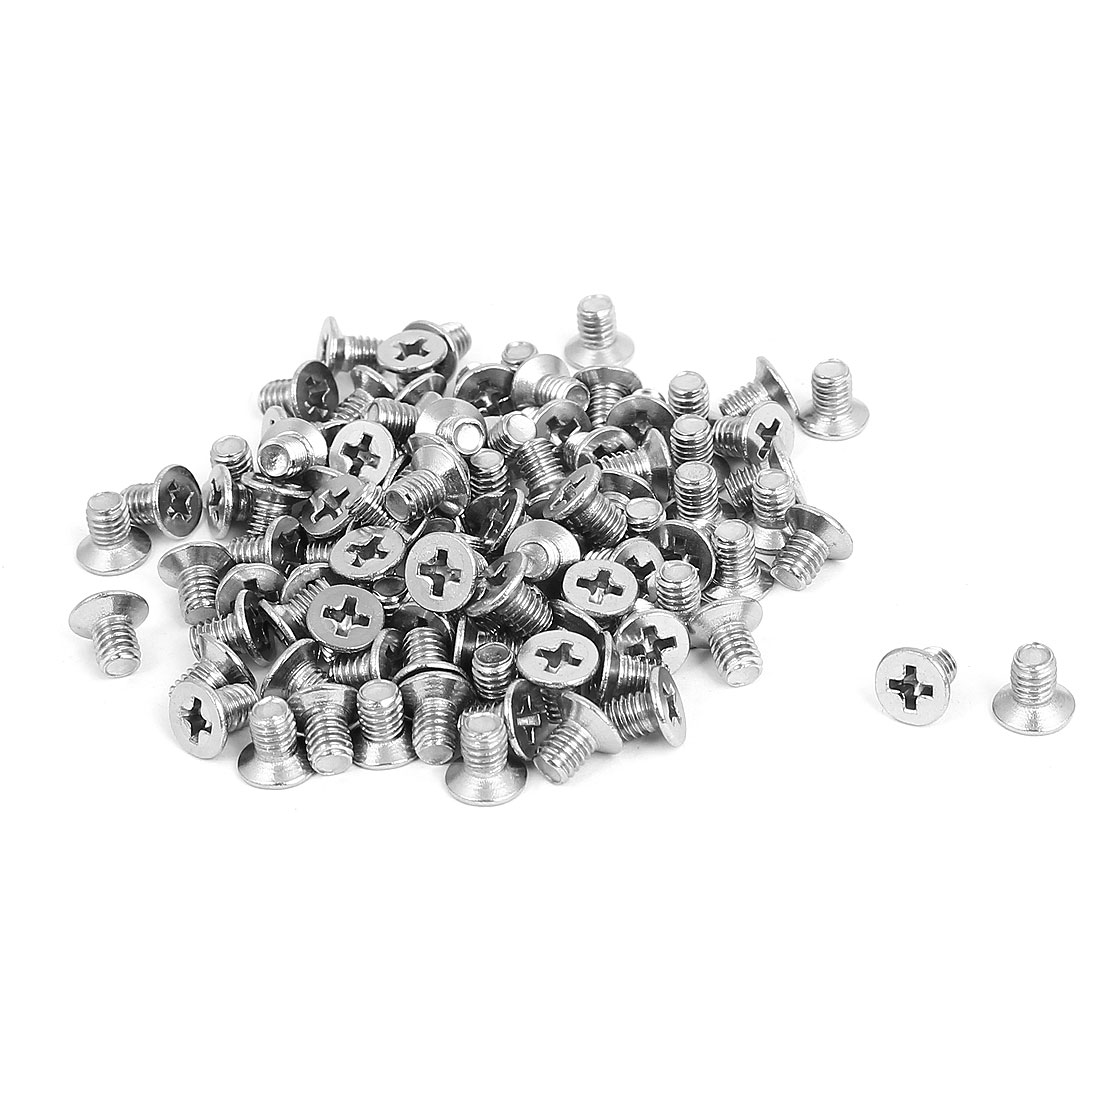 M4x6mm Stainless Steel Countersunk Flat Head Cross Phillips Screw Bolts 100pcs